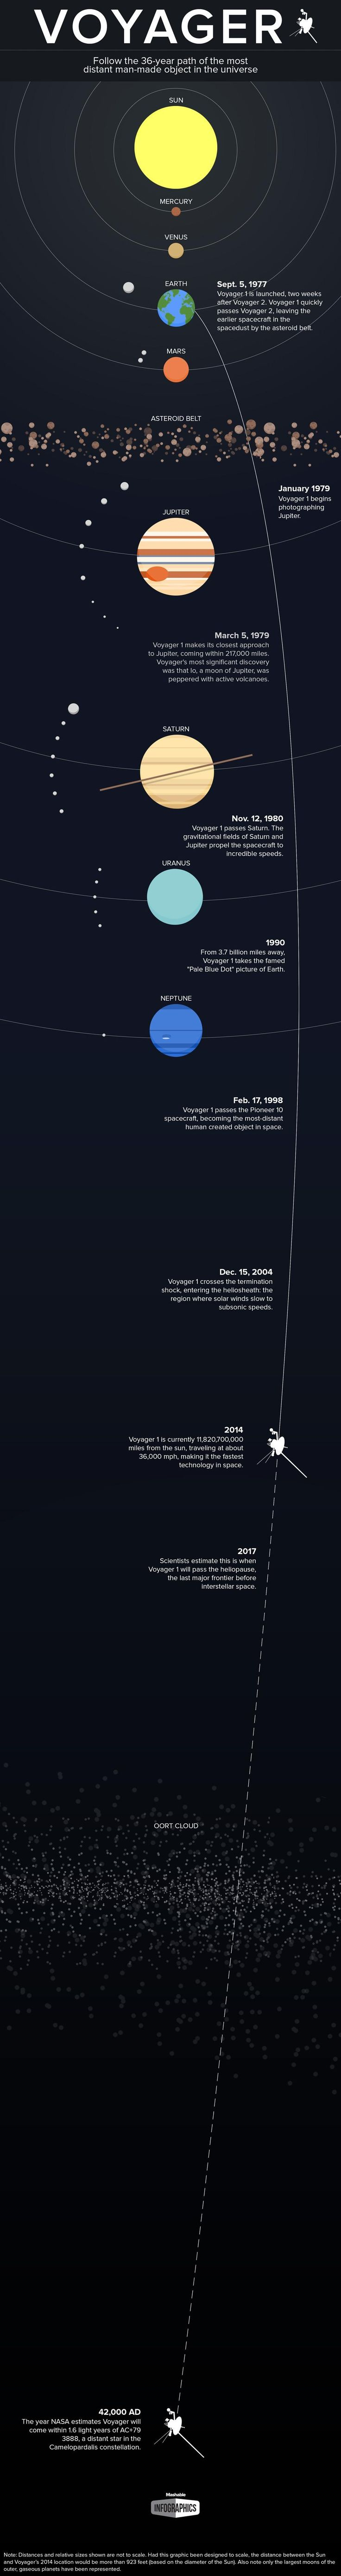 Mapping Voyager 1's Incredible 36-Year Mission Through Space [INFOGRAPHIC]